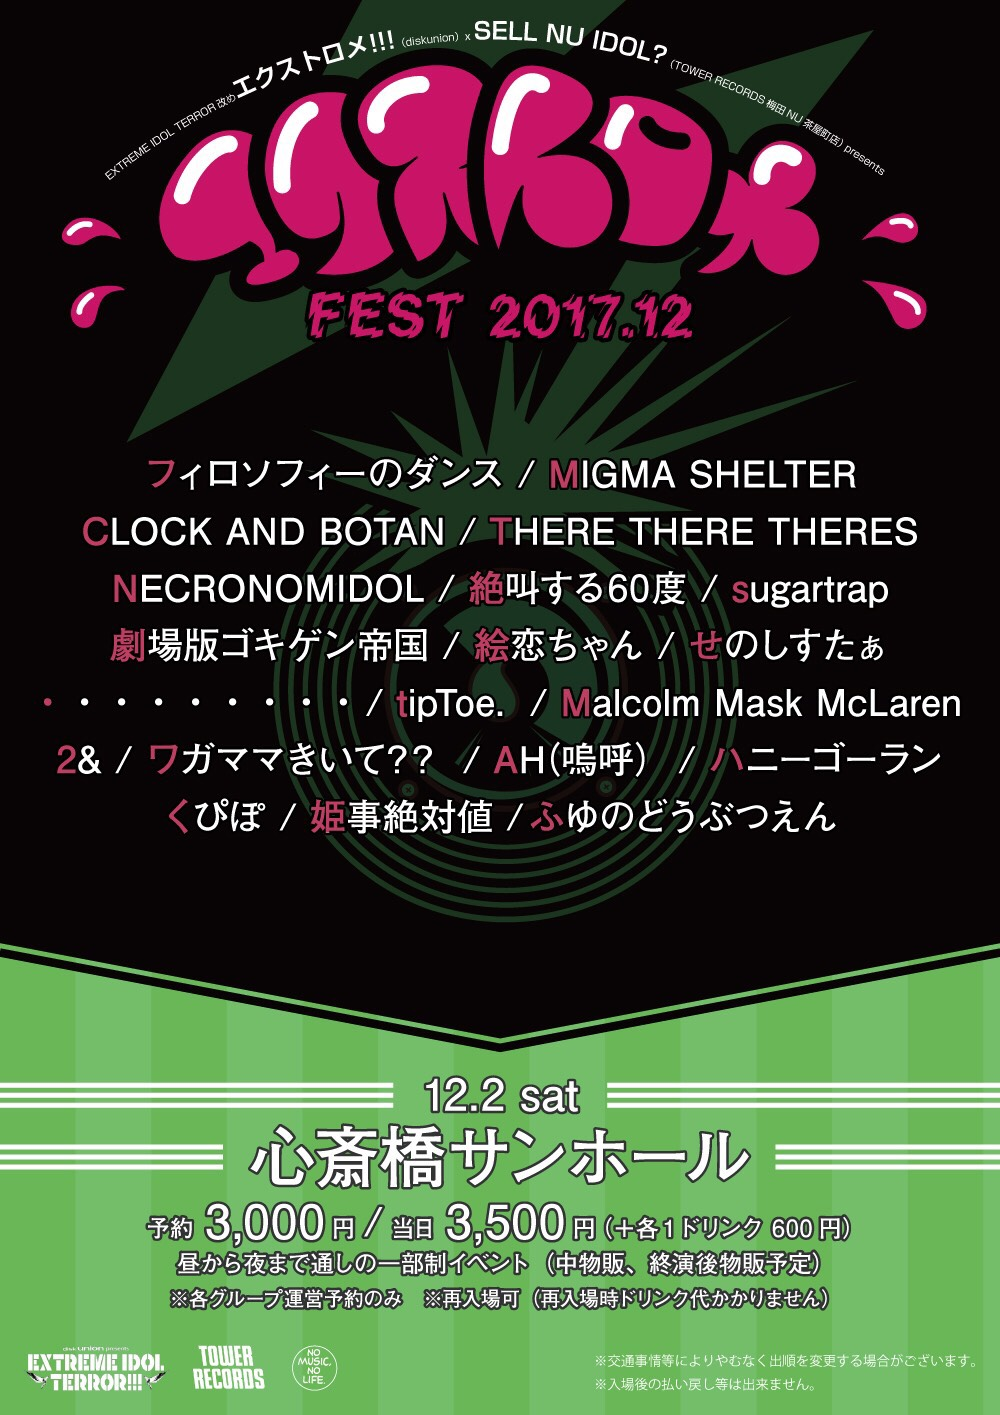 disk union×TOWER RECORDS梅田NU茶屋町(SELL NU IDOL?)PRESENTS  エクストロメ FEST